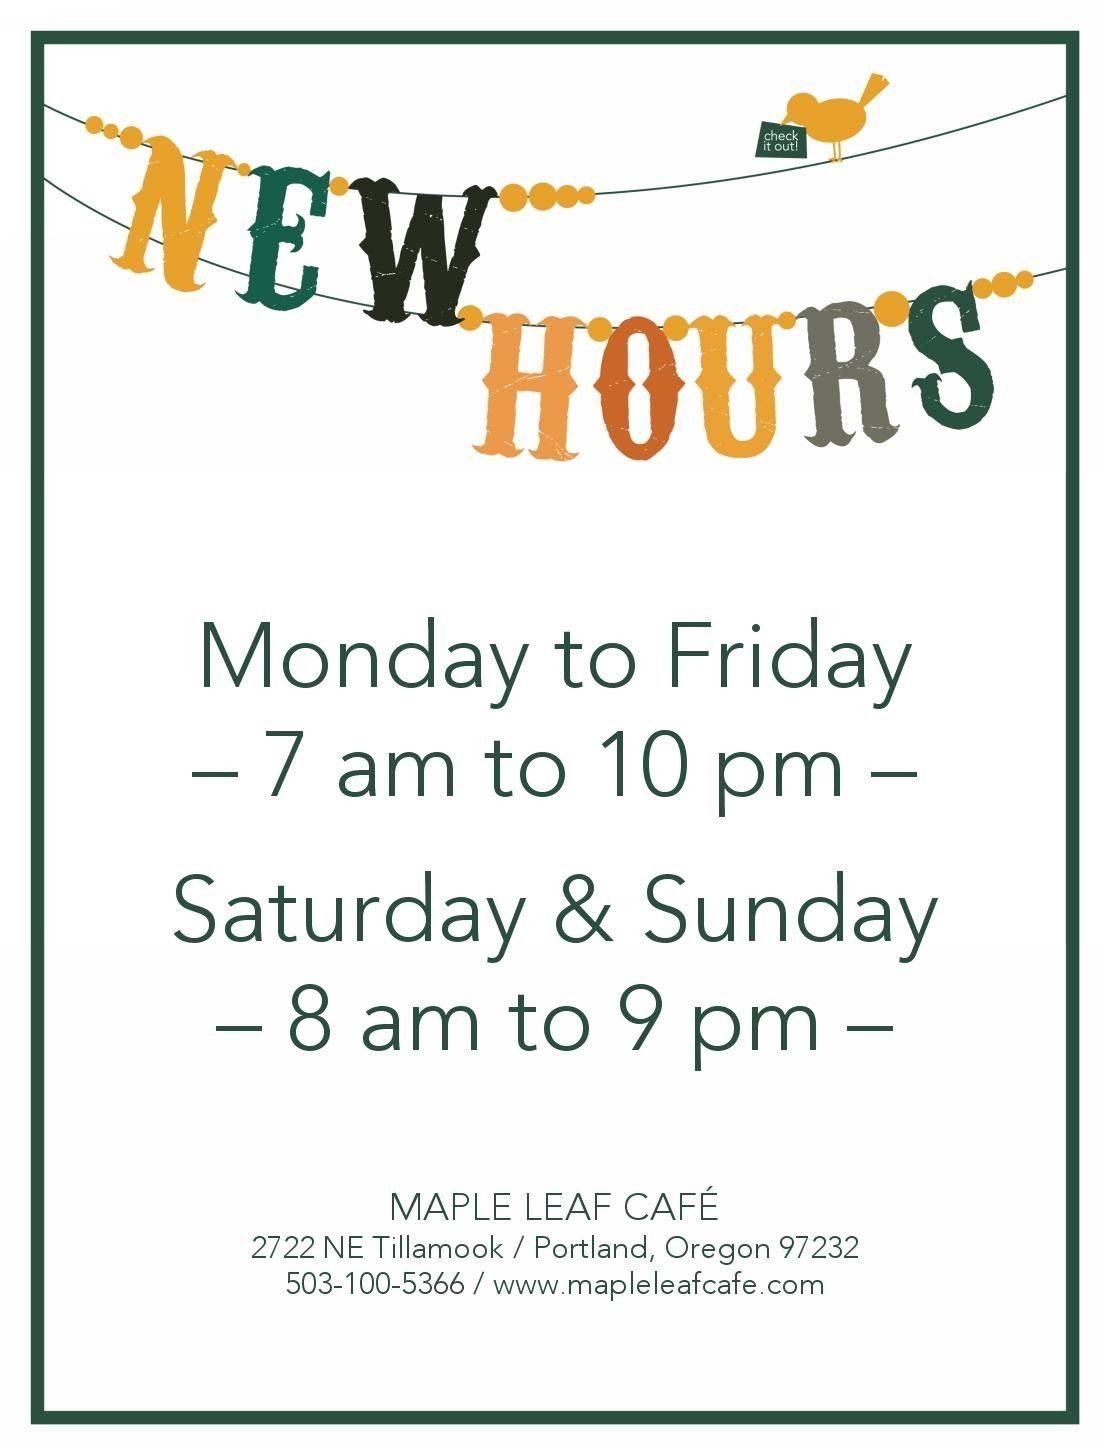 22 Business Hours Sign Template Business Templates Store Hours Sign Template Free Printable Work Schedule Business Hours Sign Store Hours Sign Sign Templates Business hours sign template free